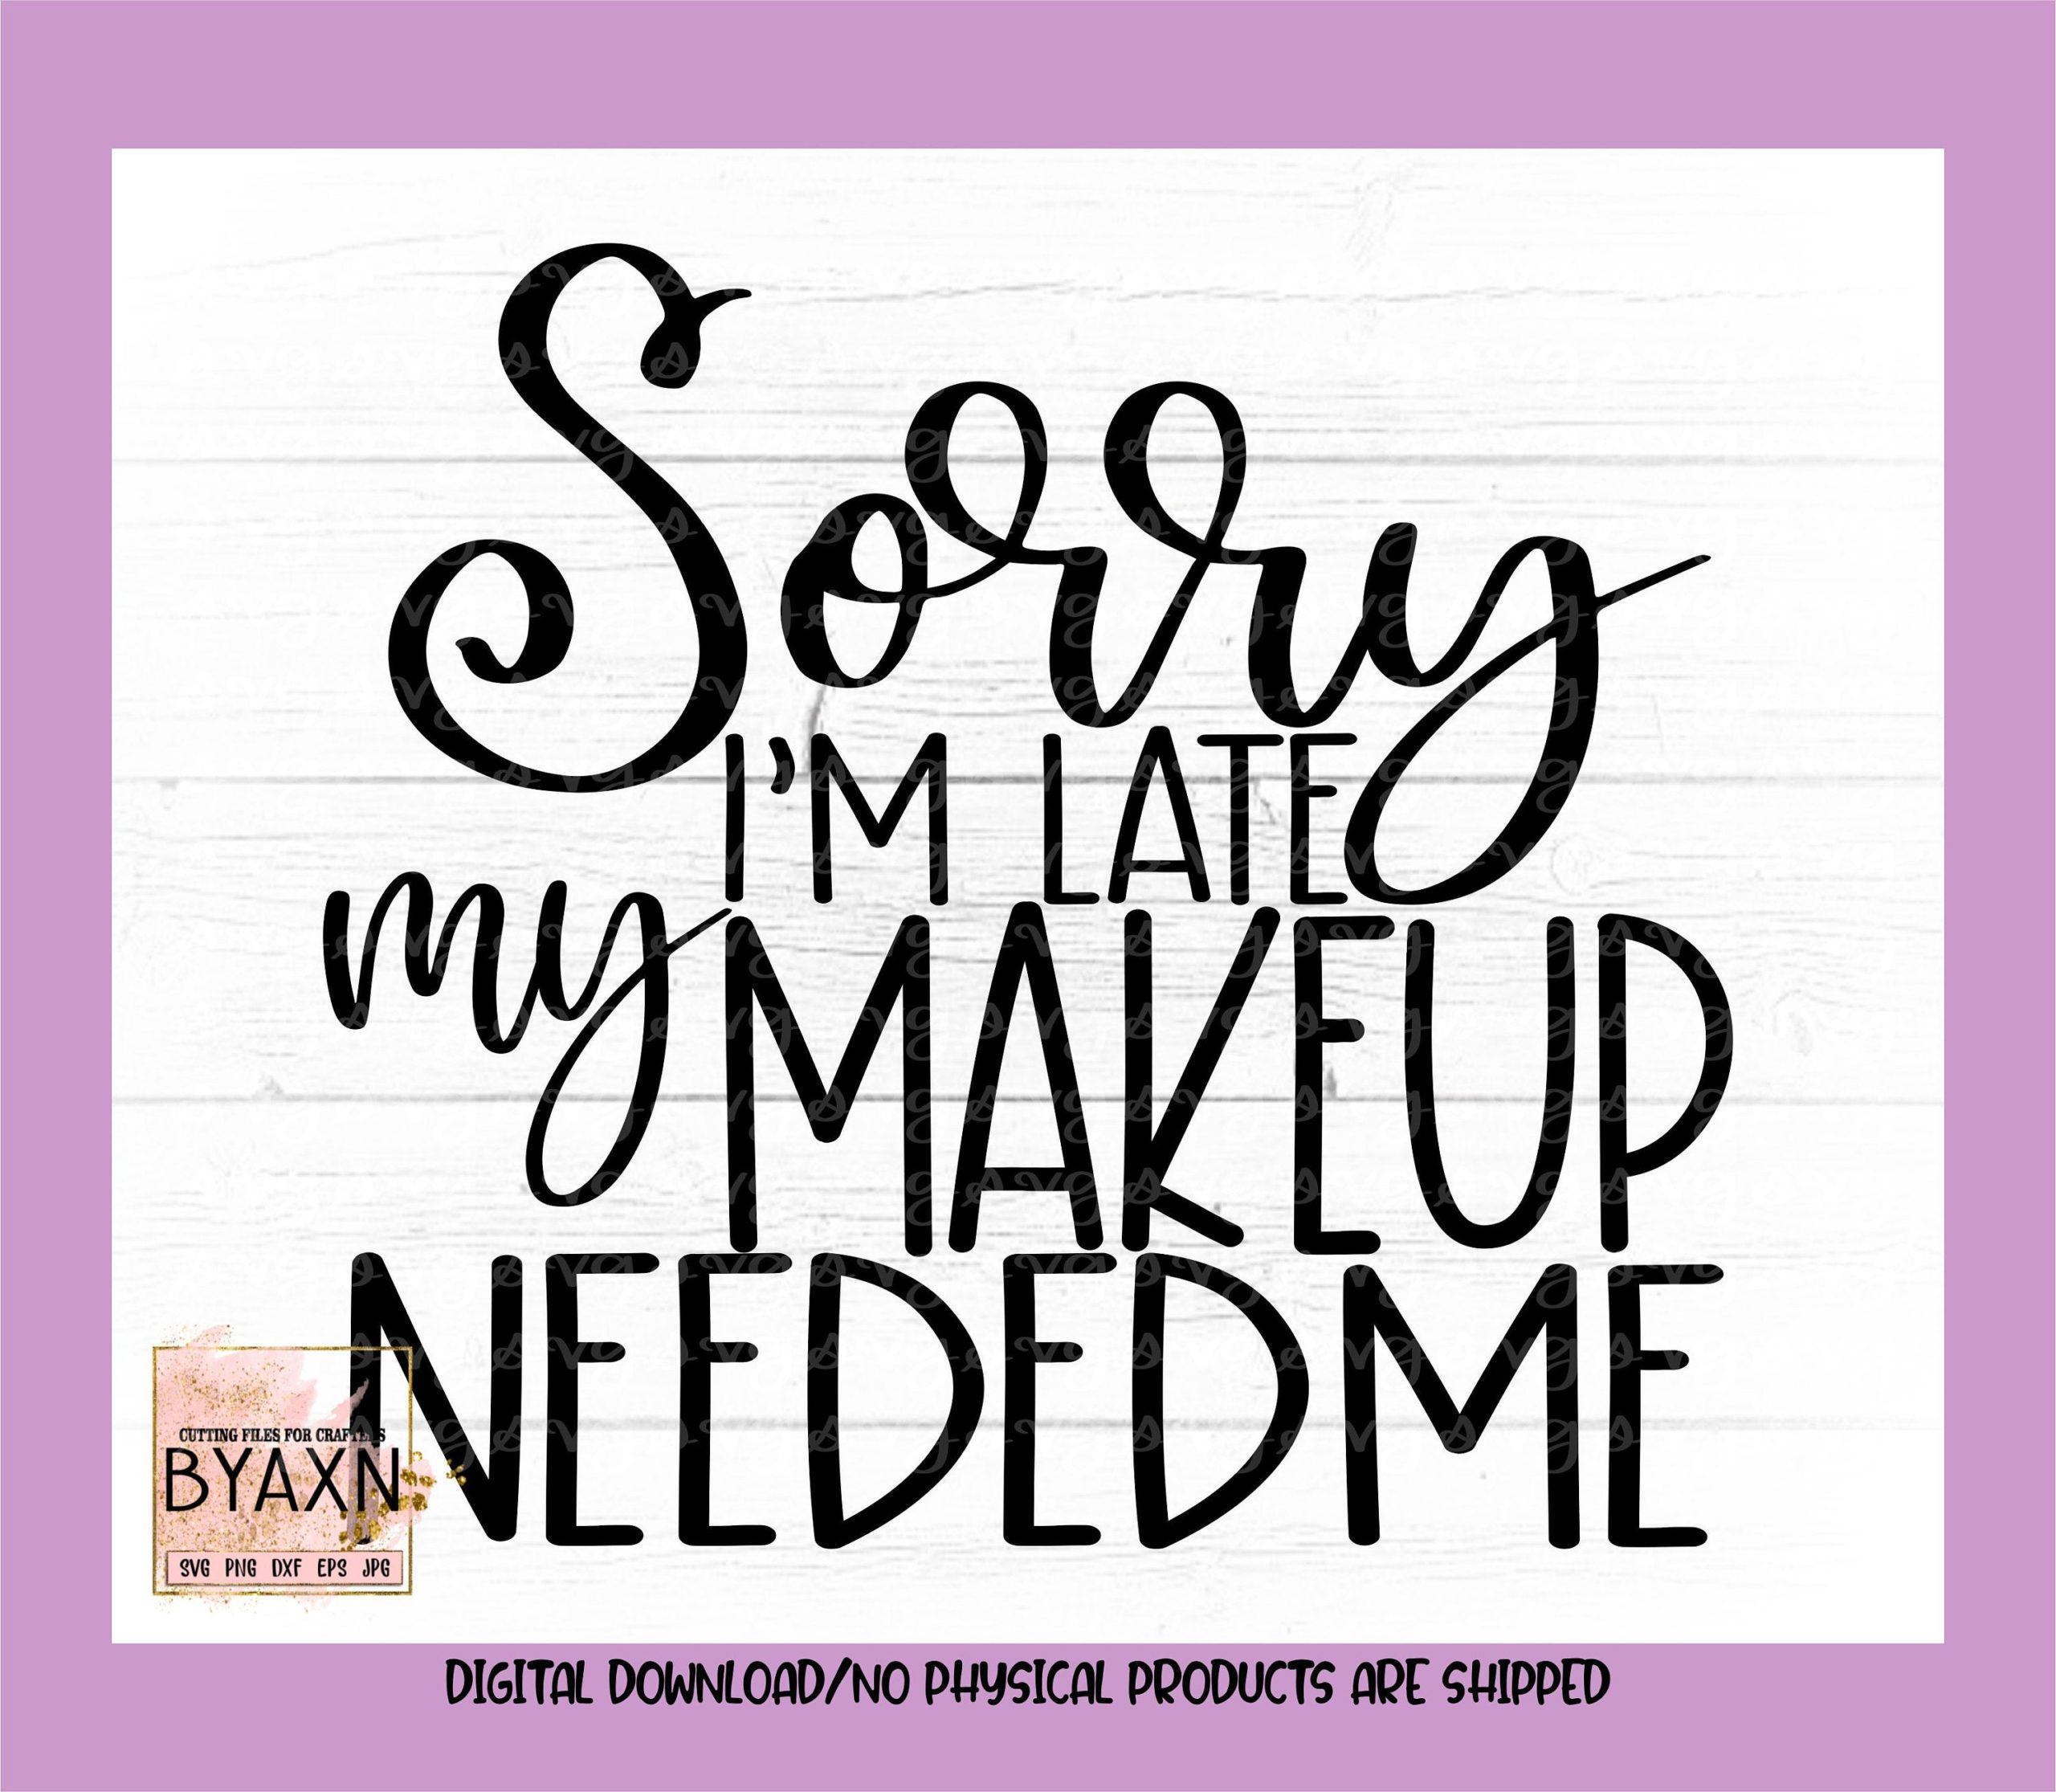 Make-up-svgsorry-im-late-my-makeup-needed-me-svg-makeup-lover-svg-mascara-svg-makeup-svg-design-makeup-cut-file-cricut-svg-60514c16